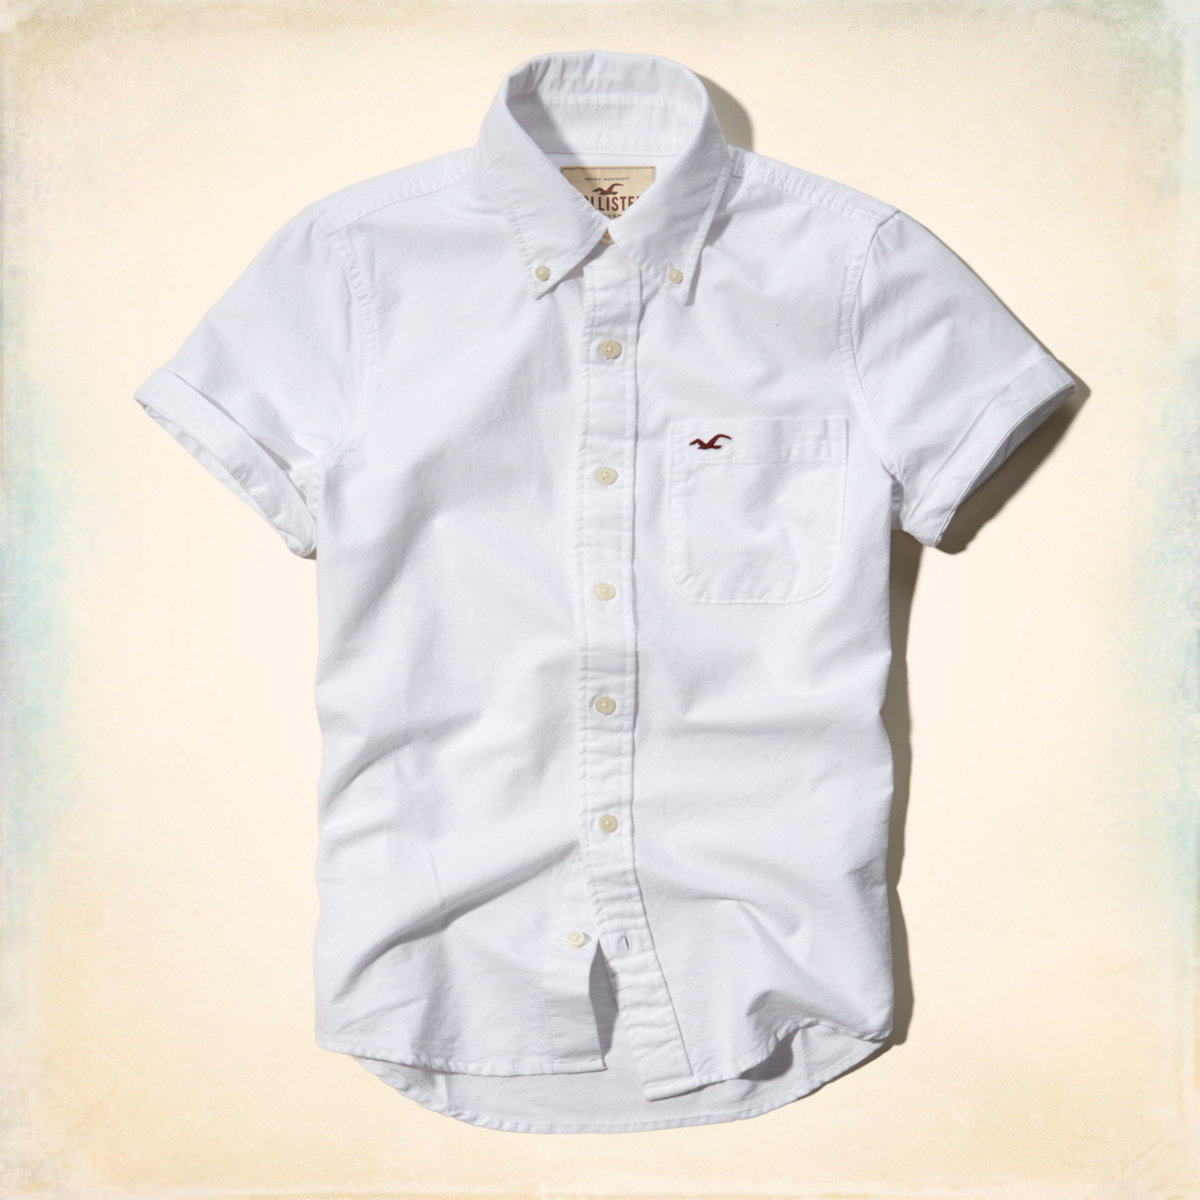 hollister button up shirts